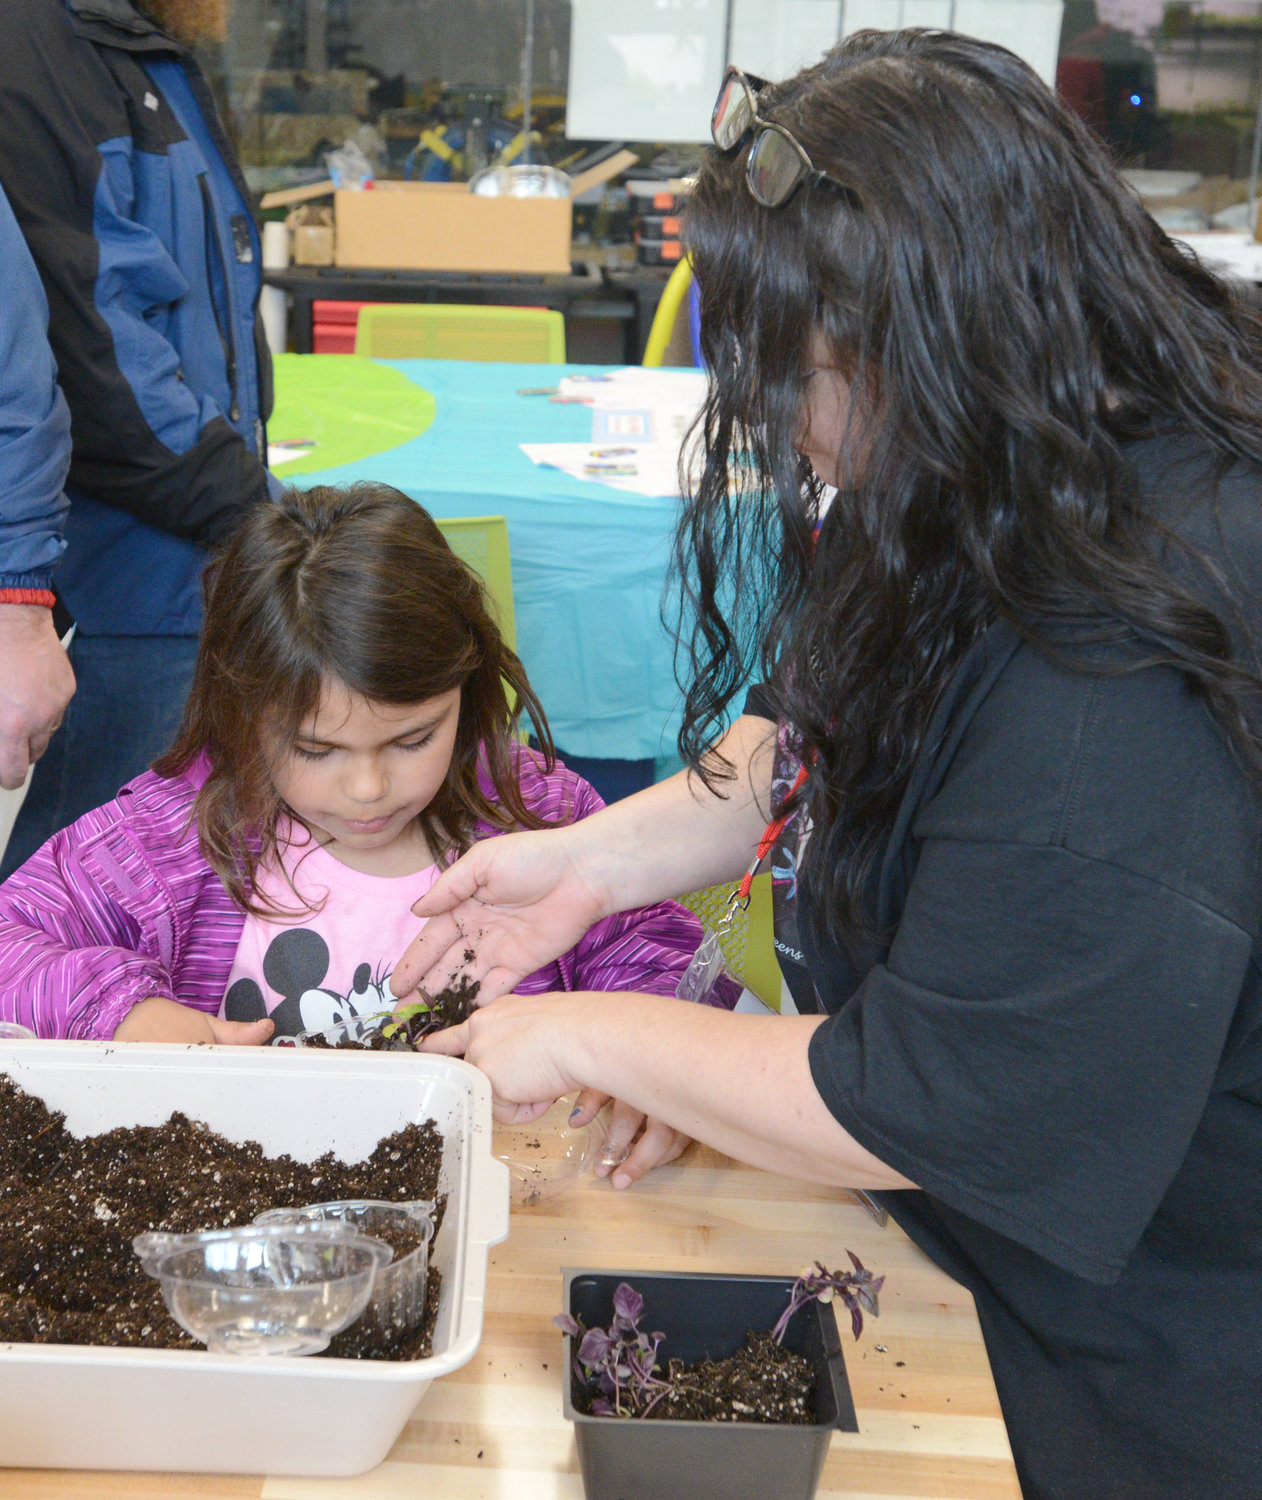 "GROWING GETS A HAND — Christina Carambia helps Kayle Frawley, 8, with planting purple varigated basil during the Mohawk Valley Mini Maker Faire on Saturday at SUNY Polytechnic Institute in Marcy. Frawley was at the event with her dad Ray Frawley, both from New Hartford. Carambia's start-up company, Underground Greens, ran a ""You Can Grow"" workshop to teach children how to garden. It was among various demonstrations and exhibits for the community at the event."